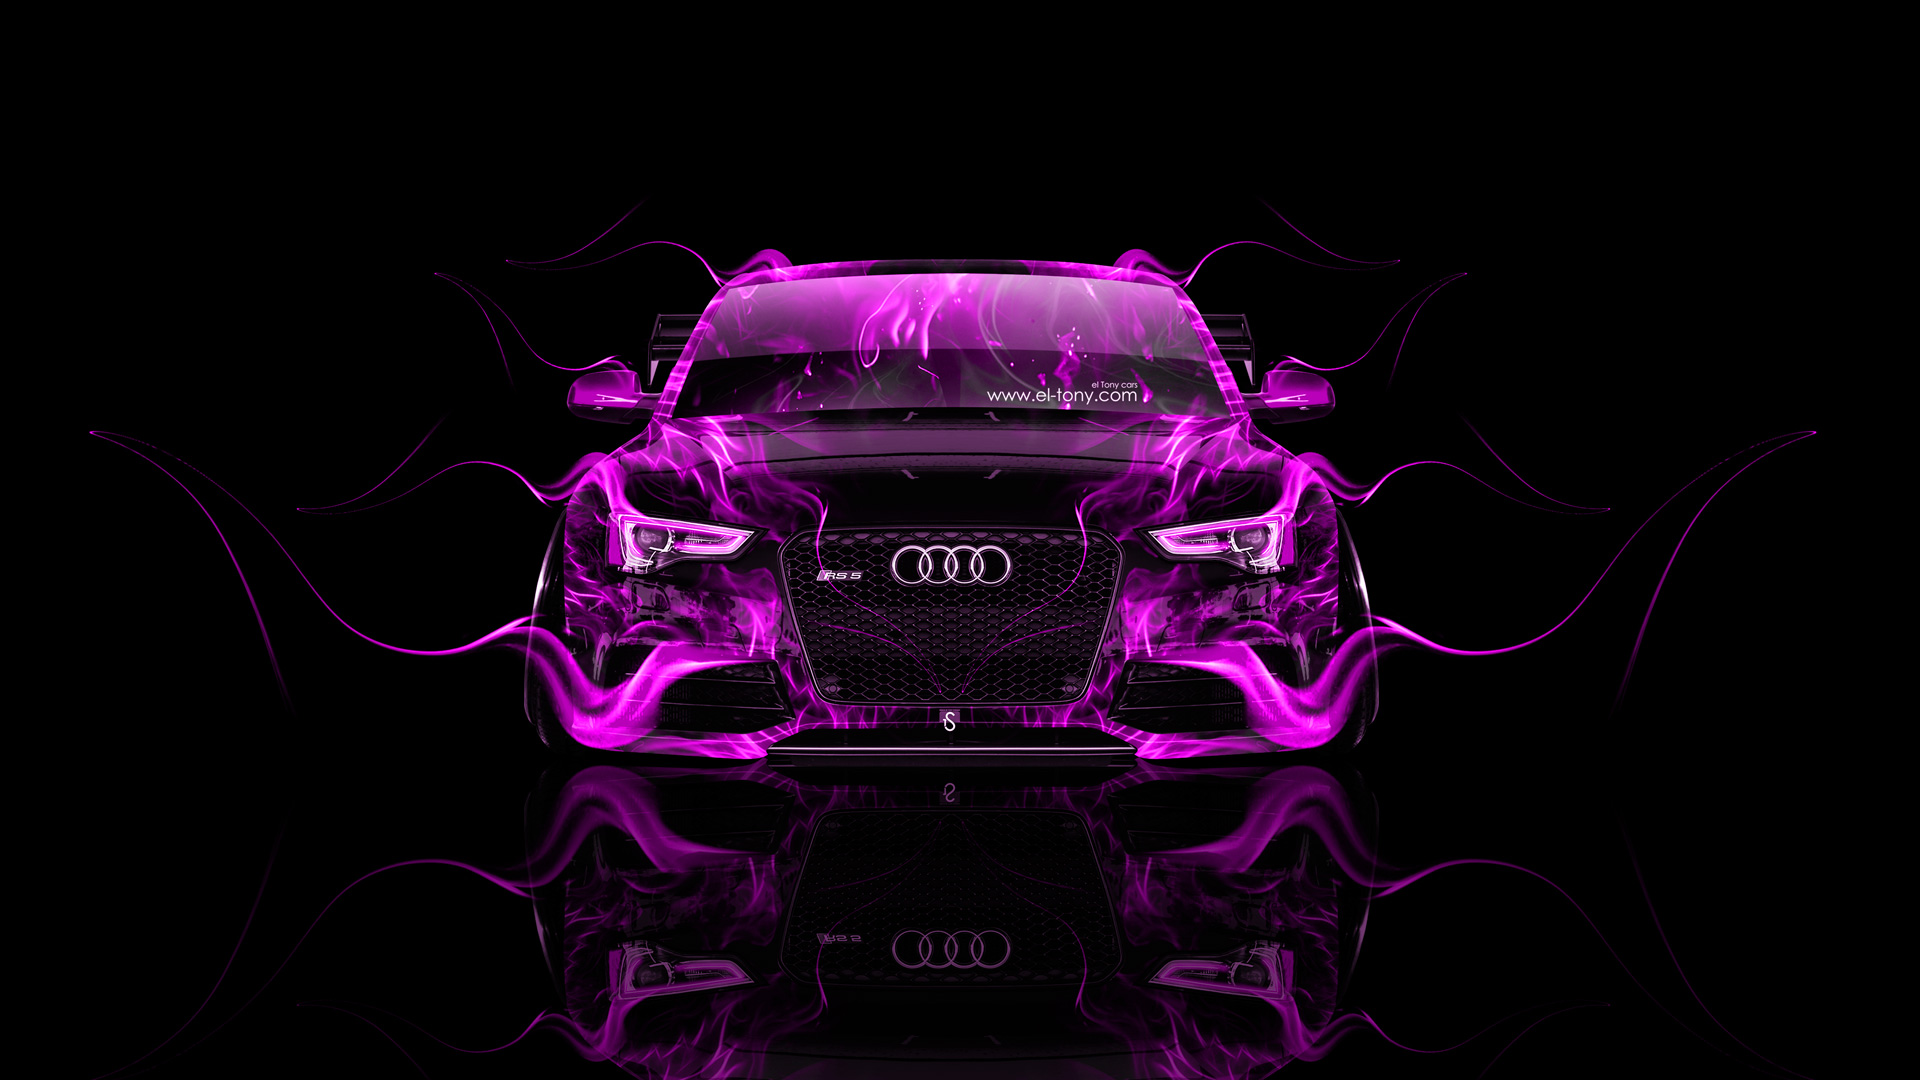 Audi rs5 tuning front fire car 2014 el tony - Best wallpapers for s5 ...